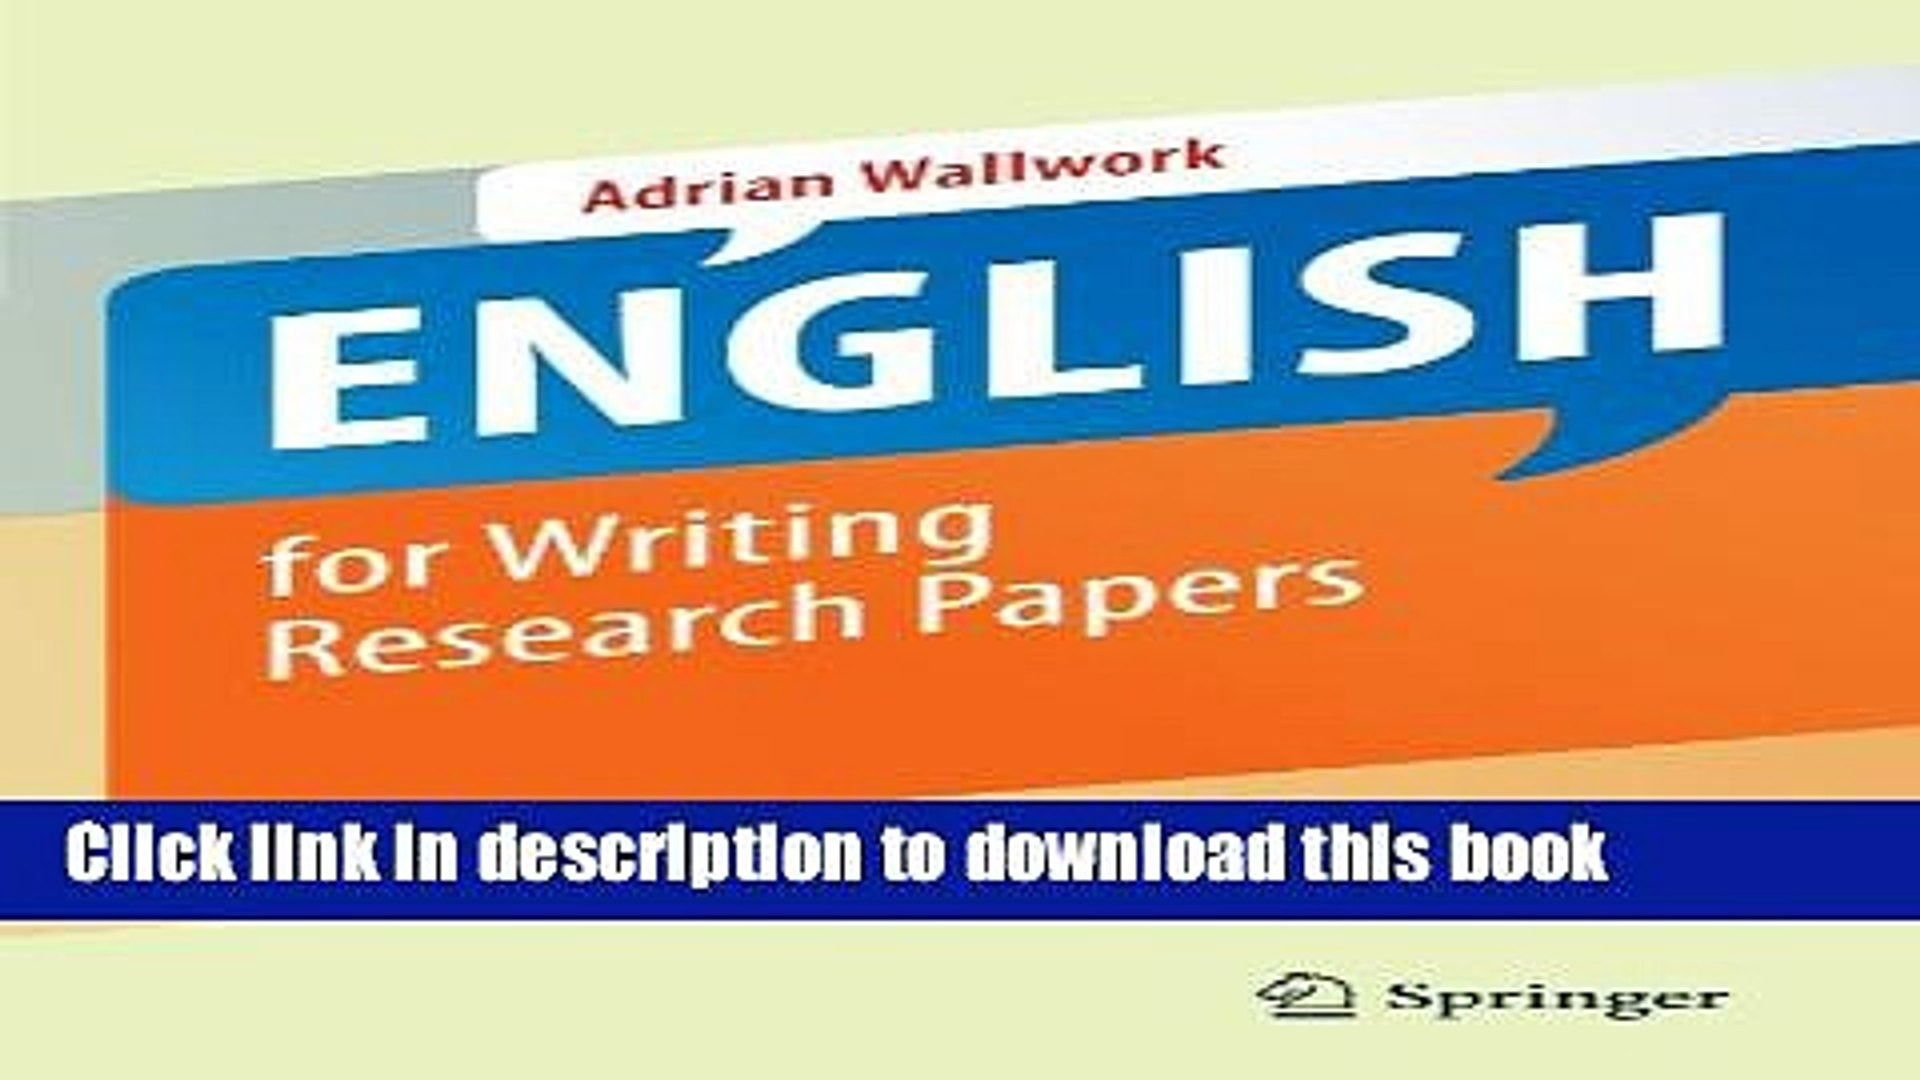 009 English For Writing Research Papers Springer Paper X1080  X4 Awesome Pdf Useful Phrases -1920